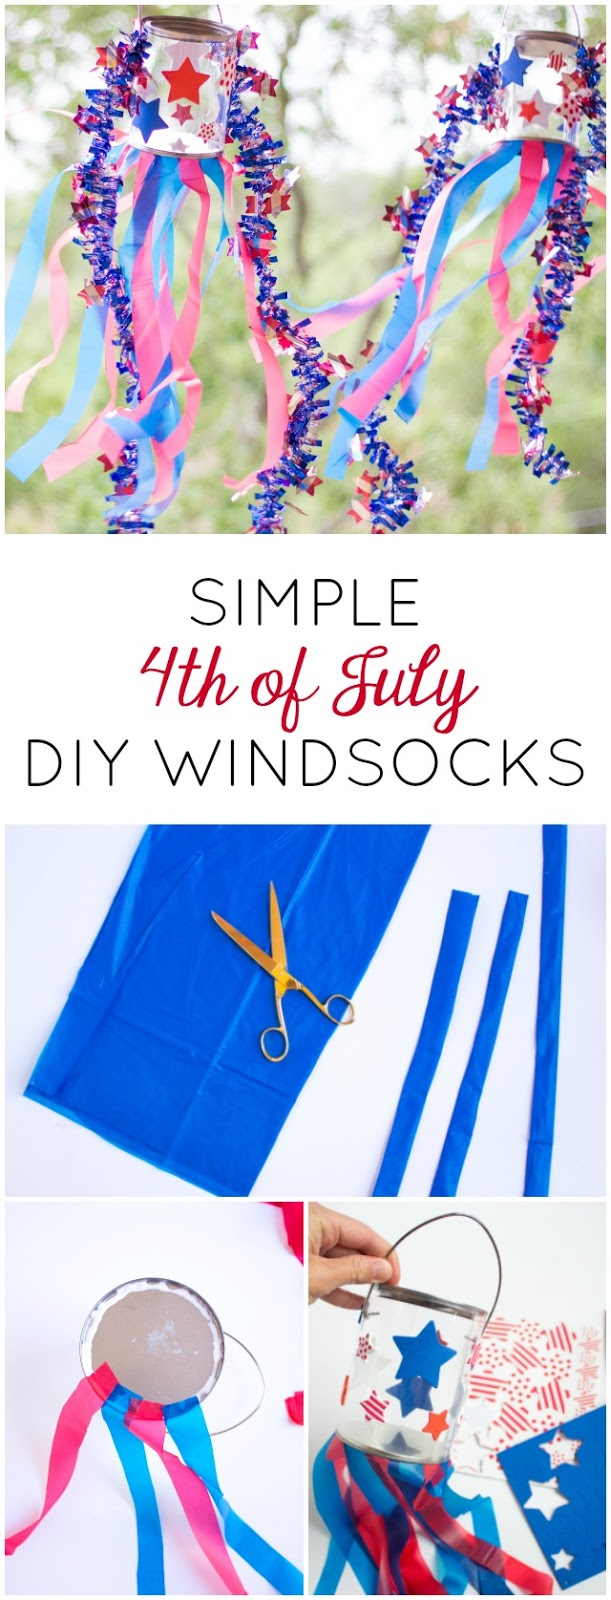 Make these simple patriotic windsocks for the Fourth of July with stickers, plastic tablecloths, and a clear paint can. So easy!